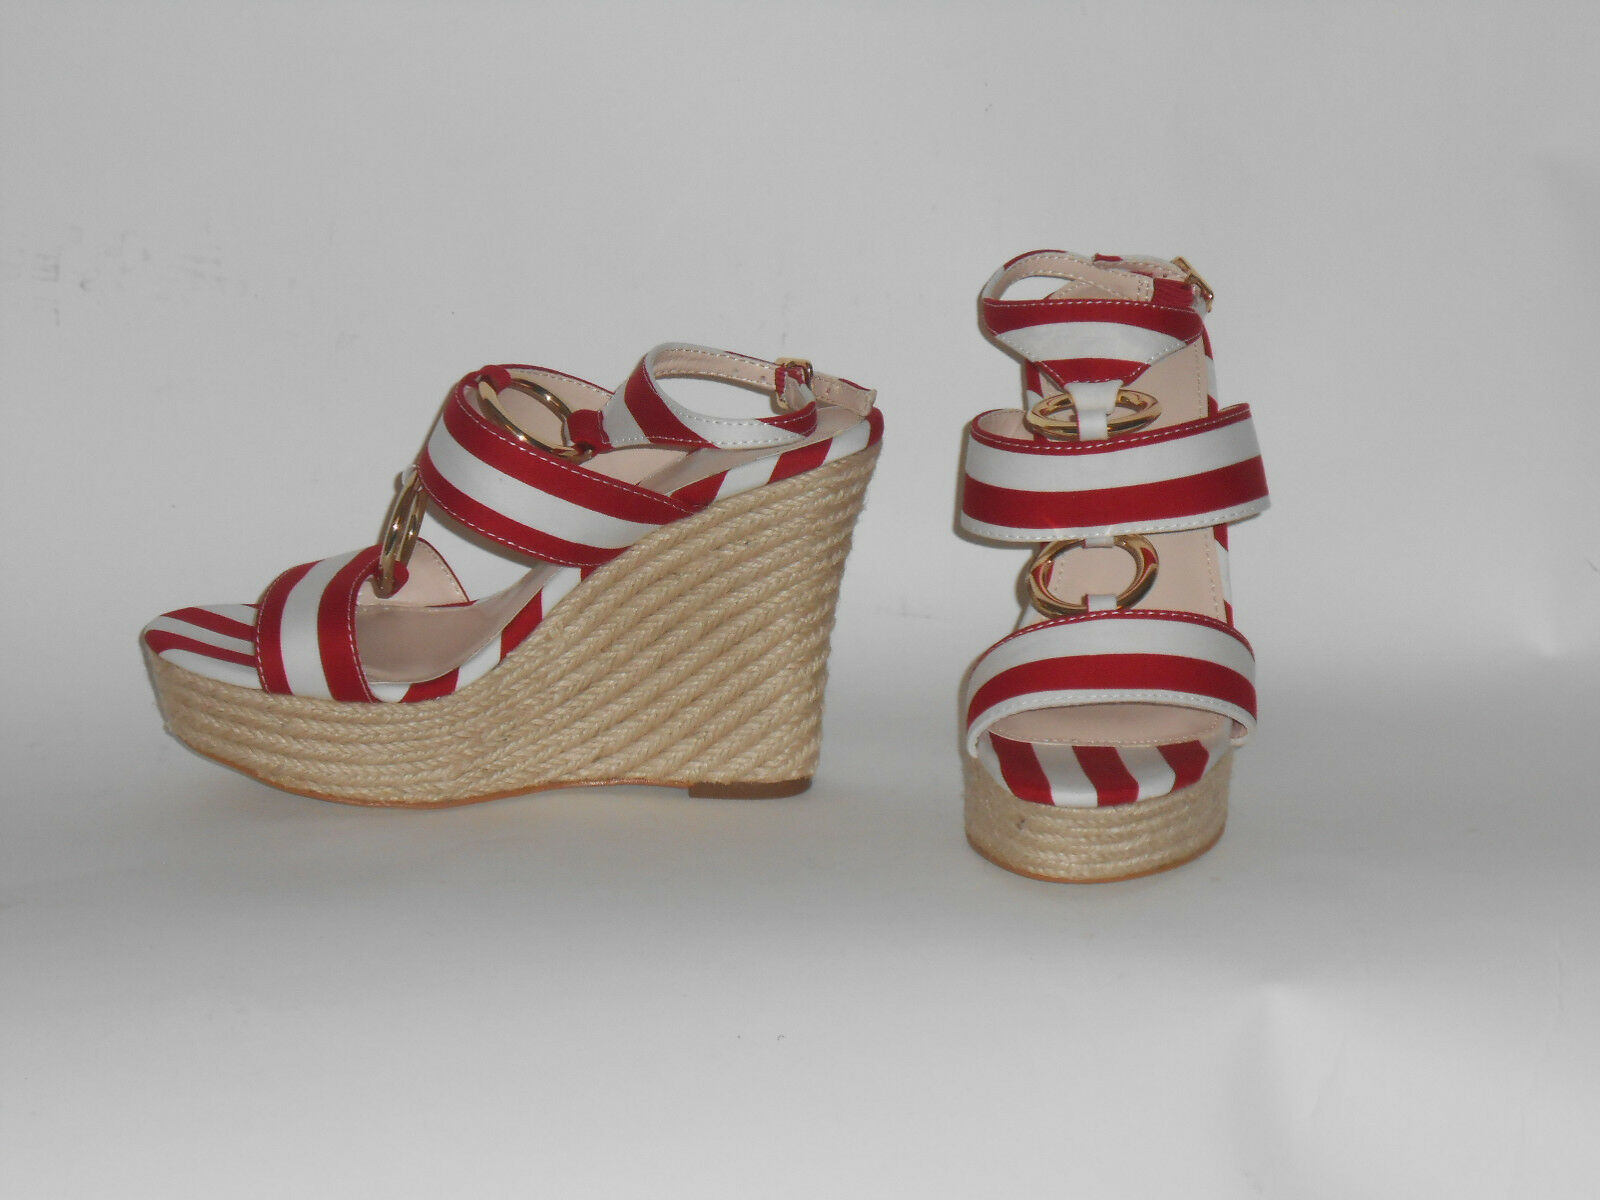 VS STRIPED FABRIC WEDGE SANDAL